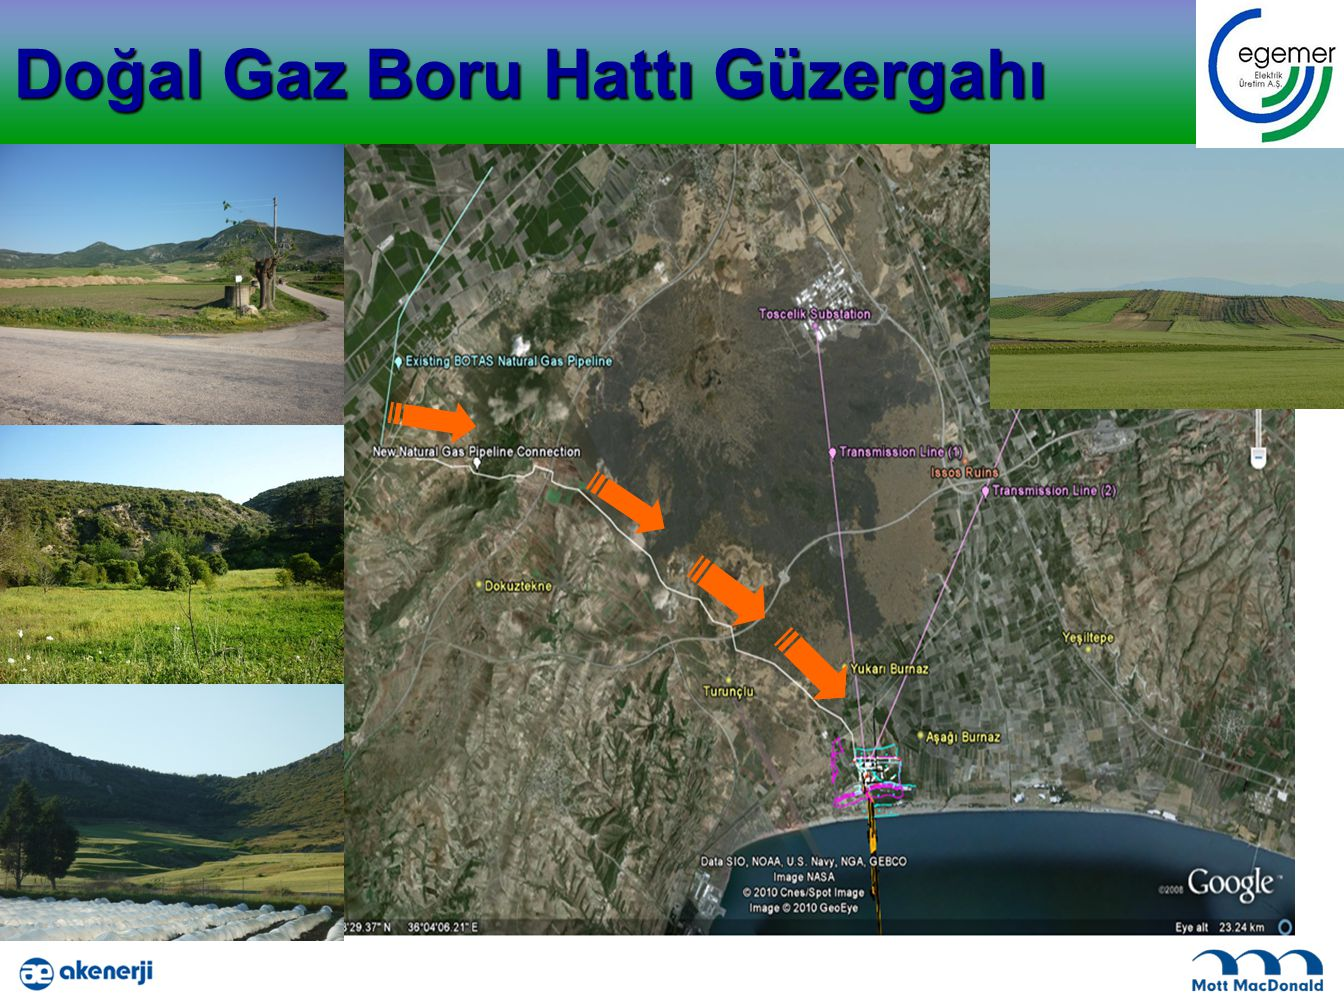 Doğal Gaz Boru Hattı Güzergahı View to Mountain Range from Connection with Existing Natural Gas Pipeline View Looking Away from Project Site to Mountain Range Hilly Areas